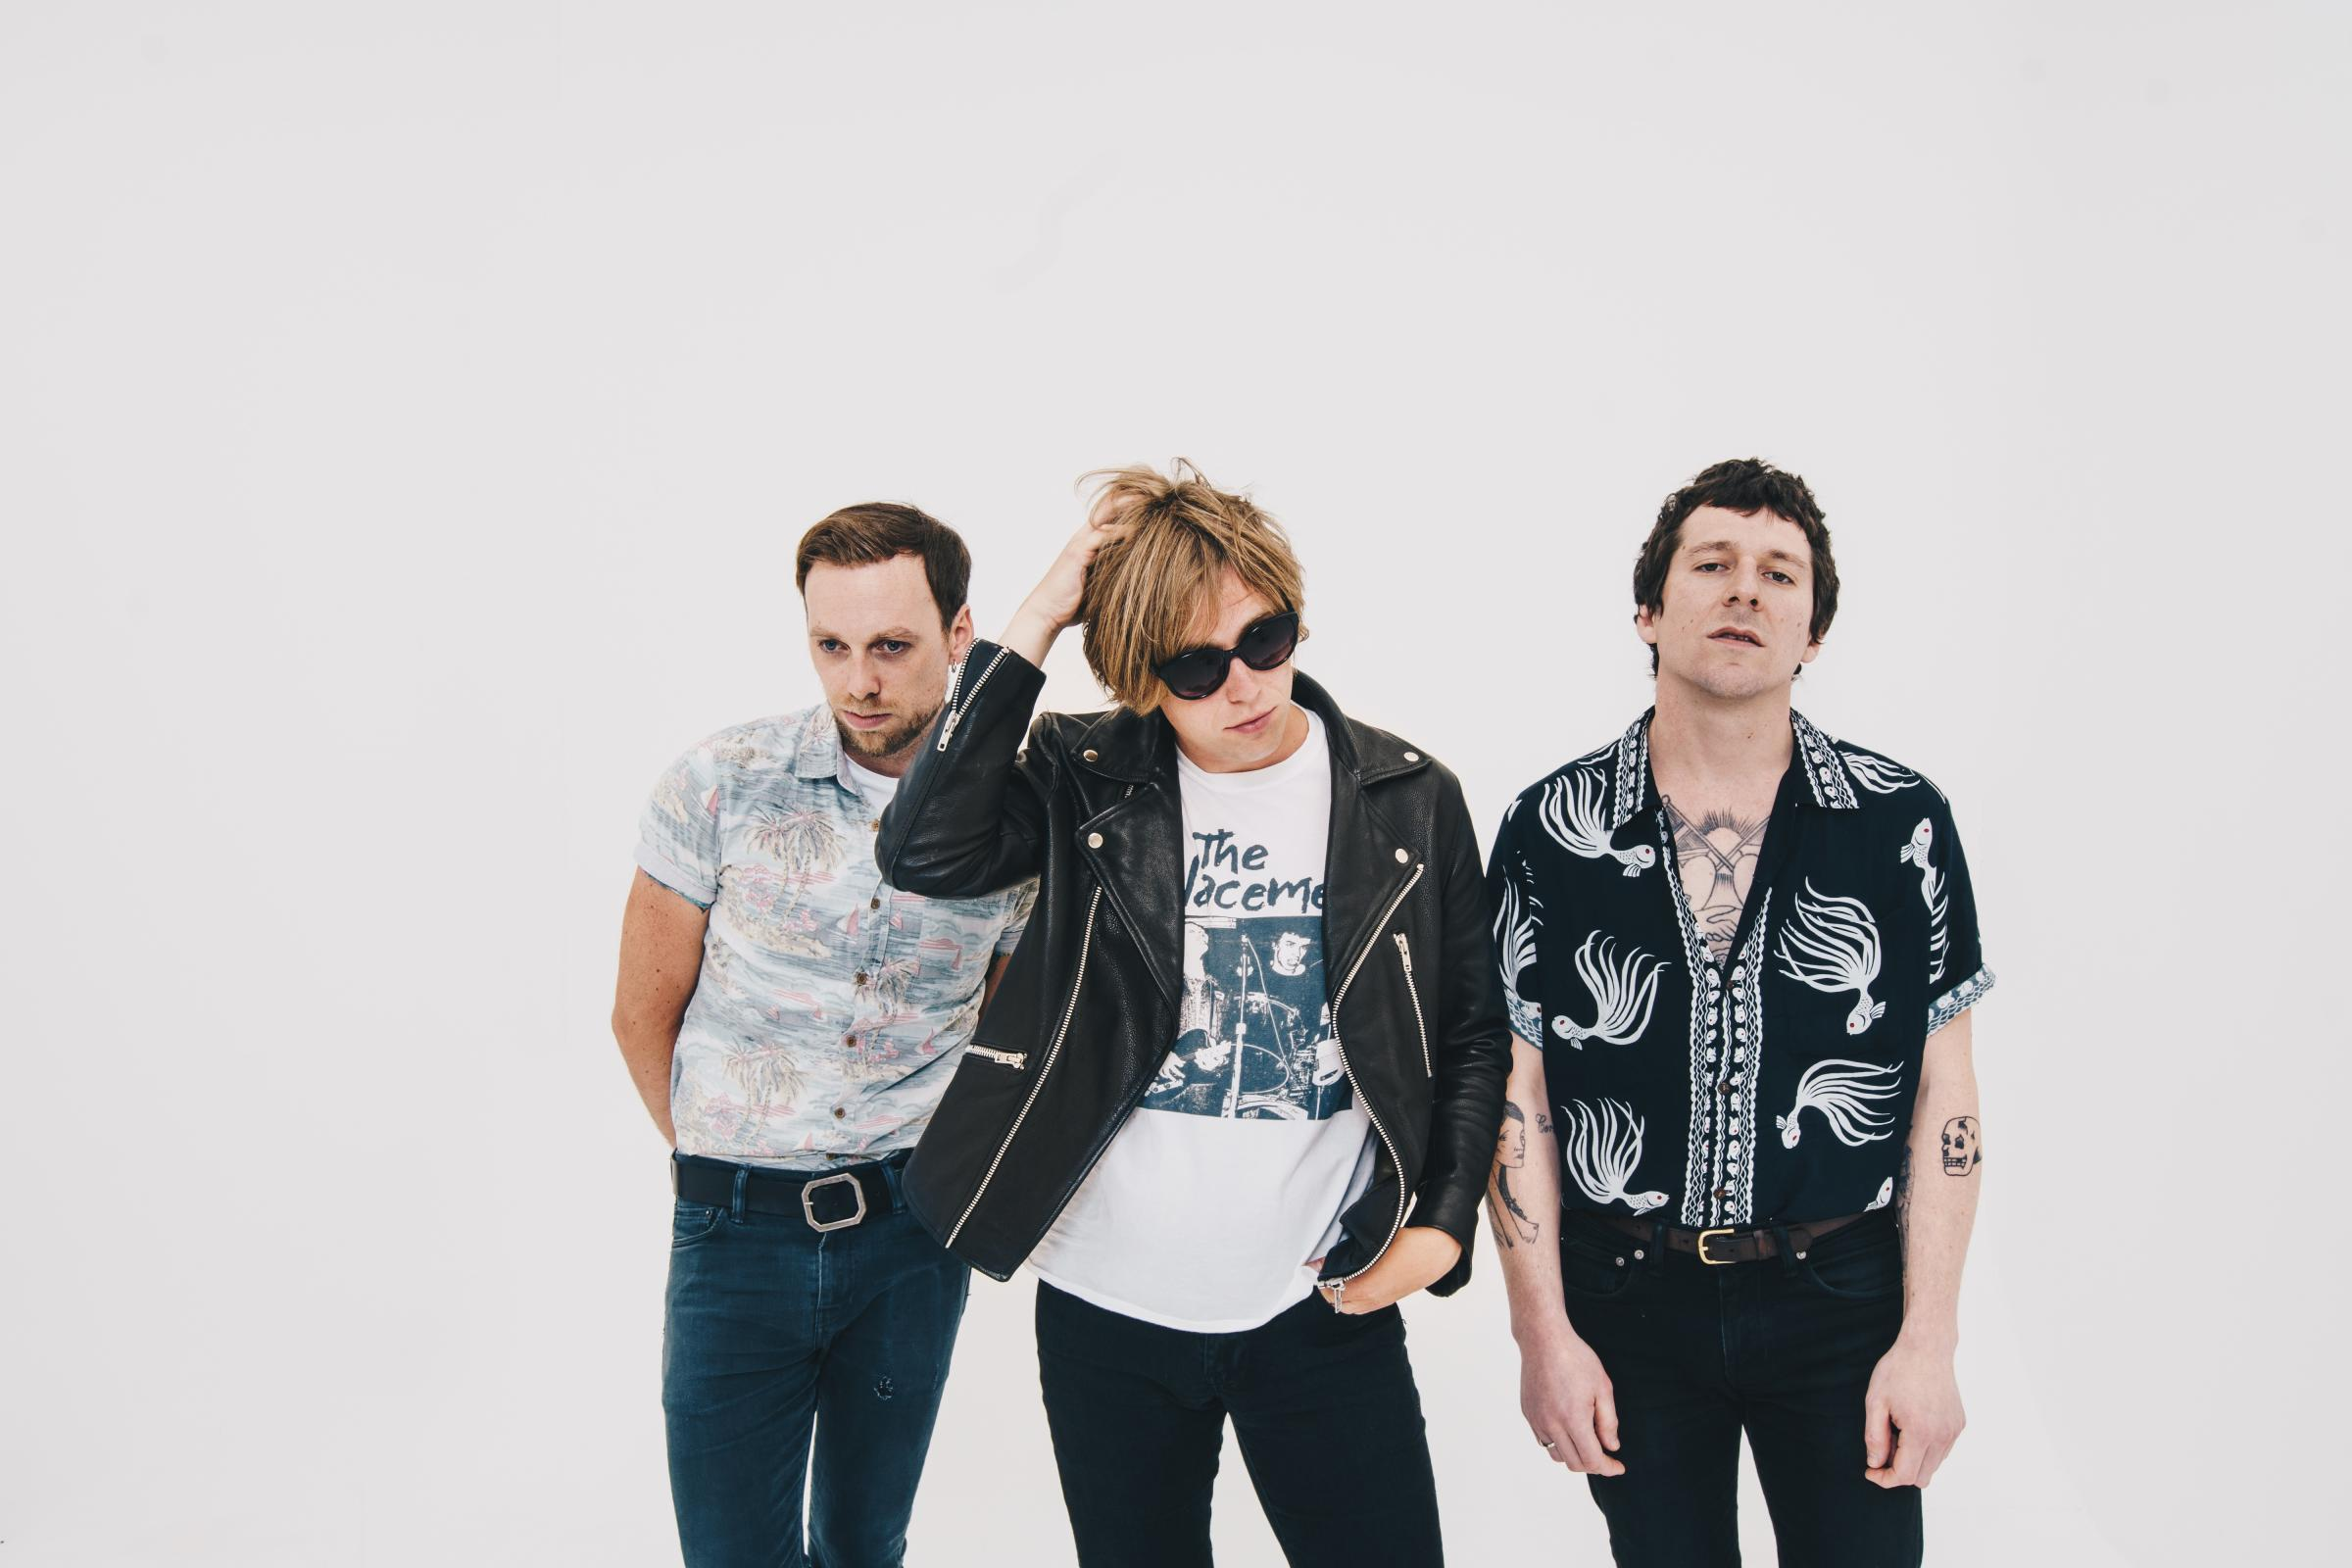 The XCerts are touring with new EP Wildheart Dreaming